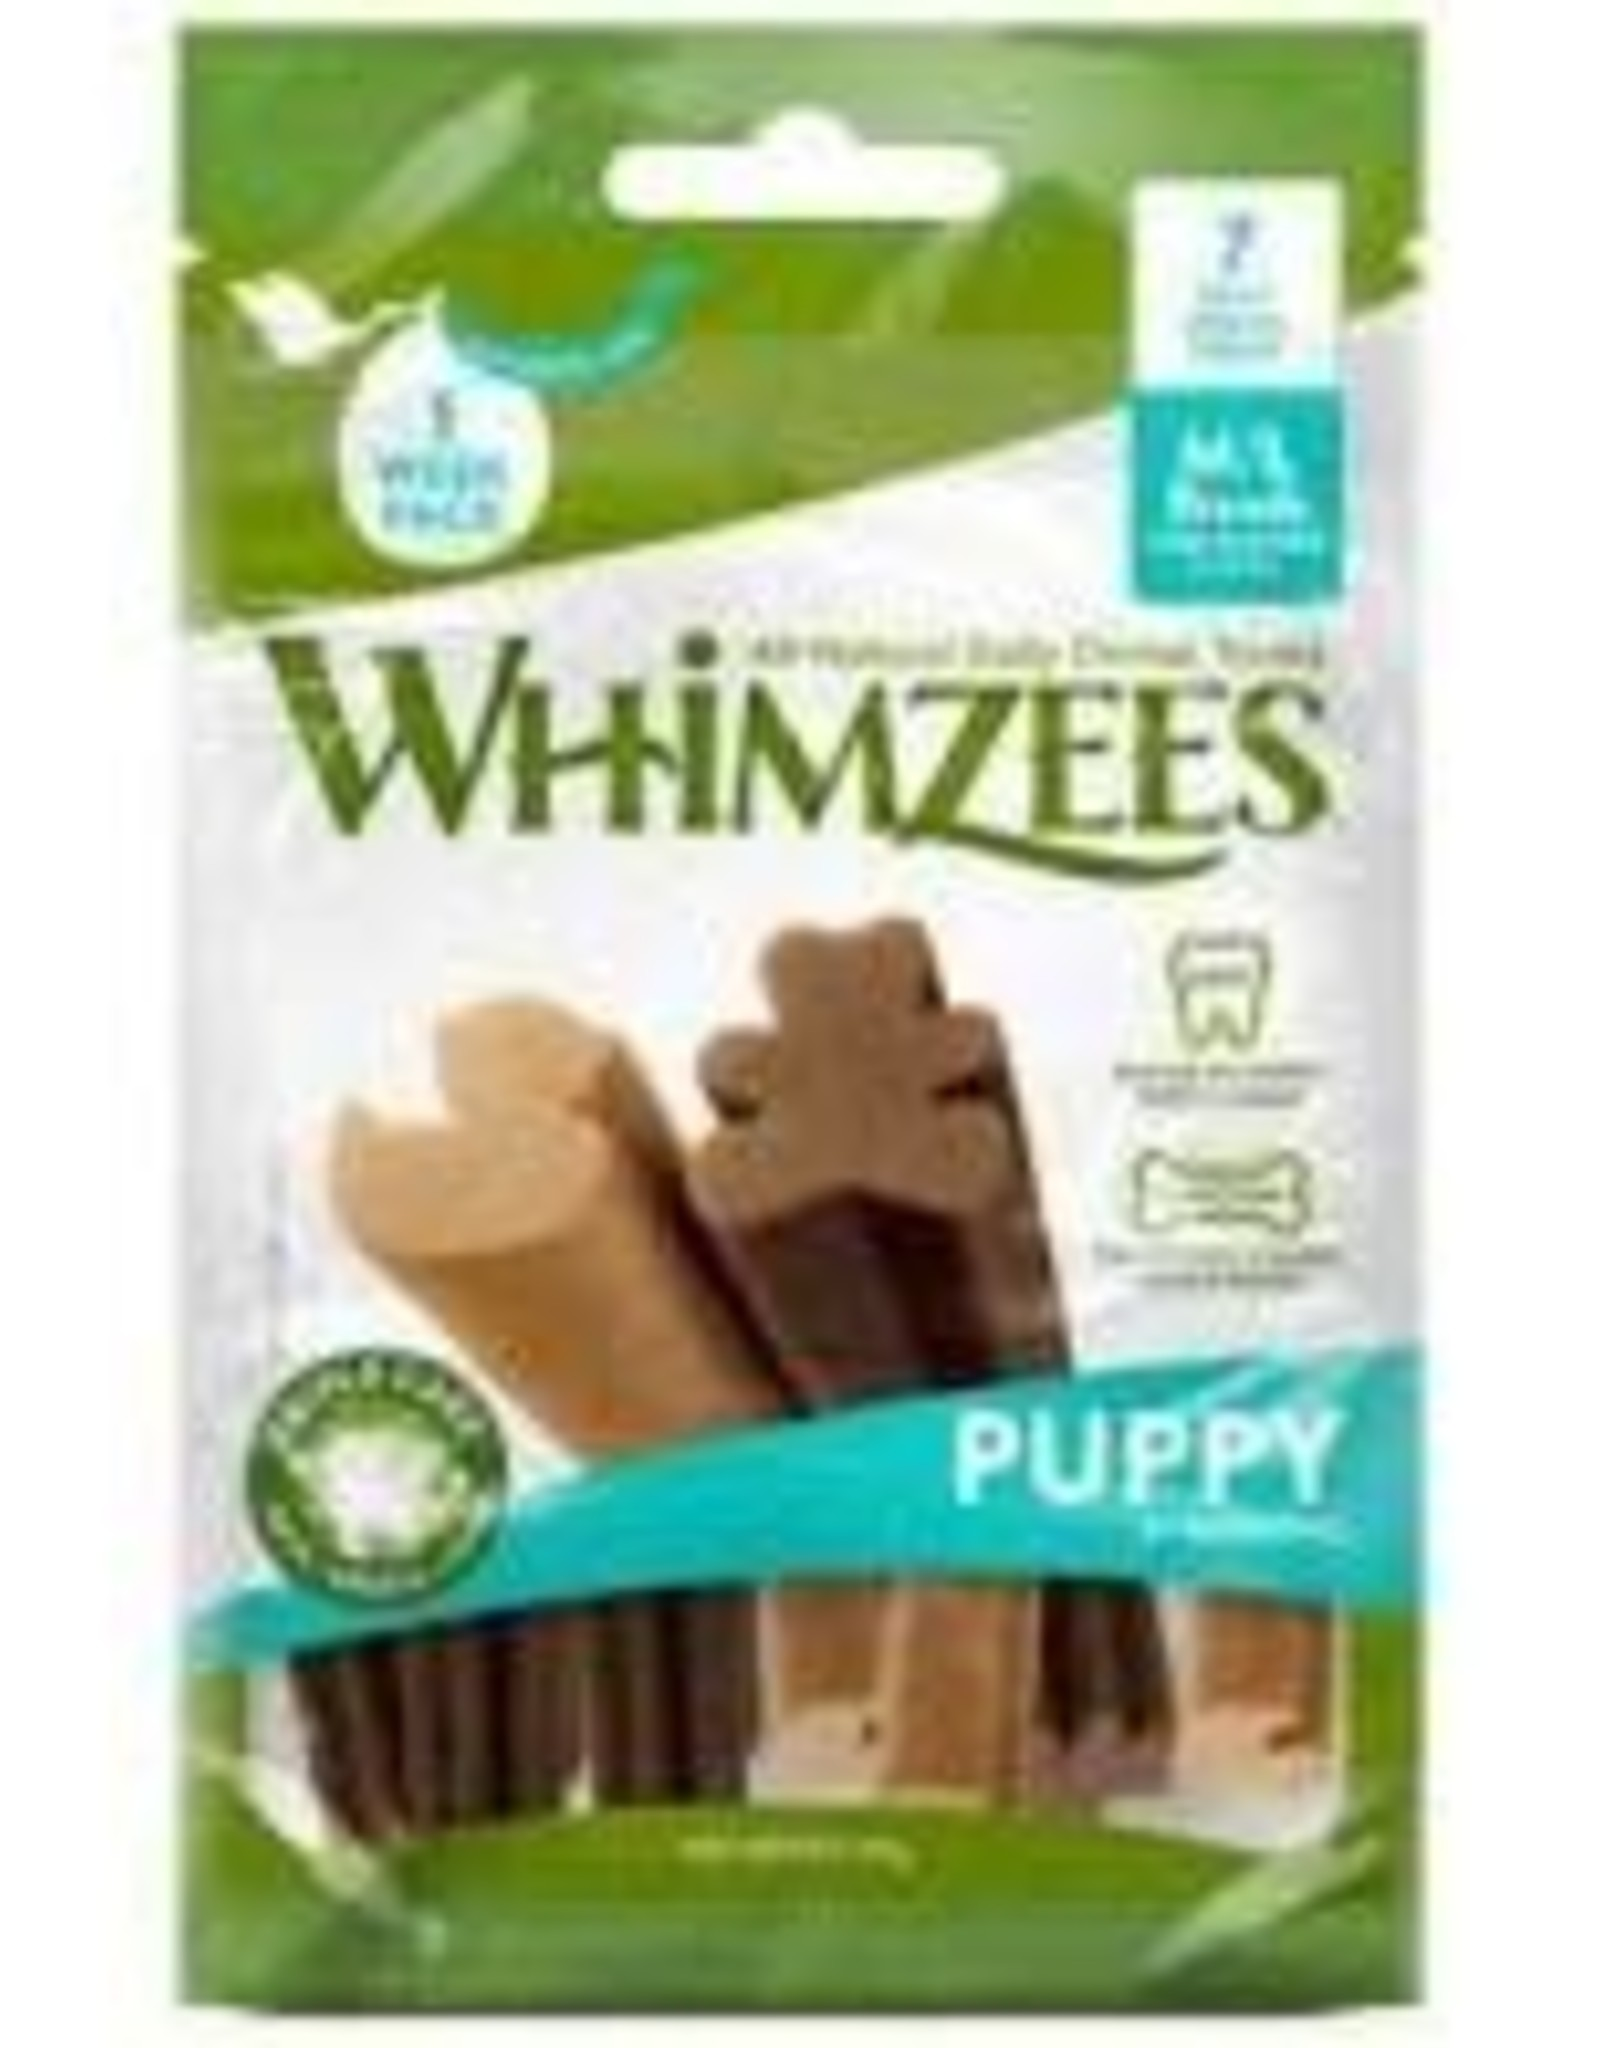 Whimzee Whimzees Puppy M/L  Pouch 14 pc 7.4 oz